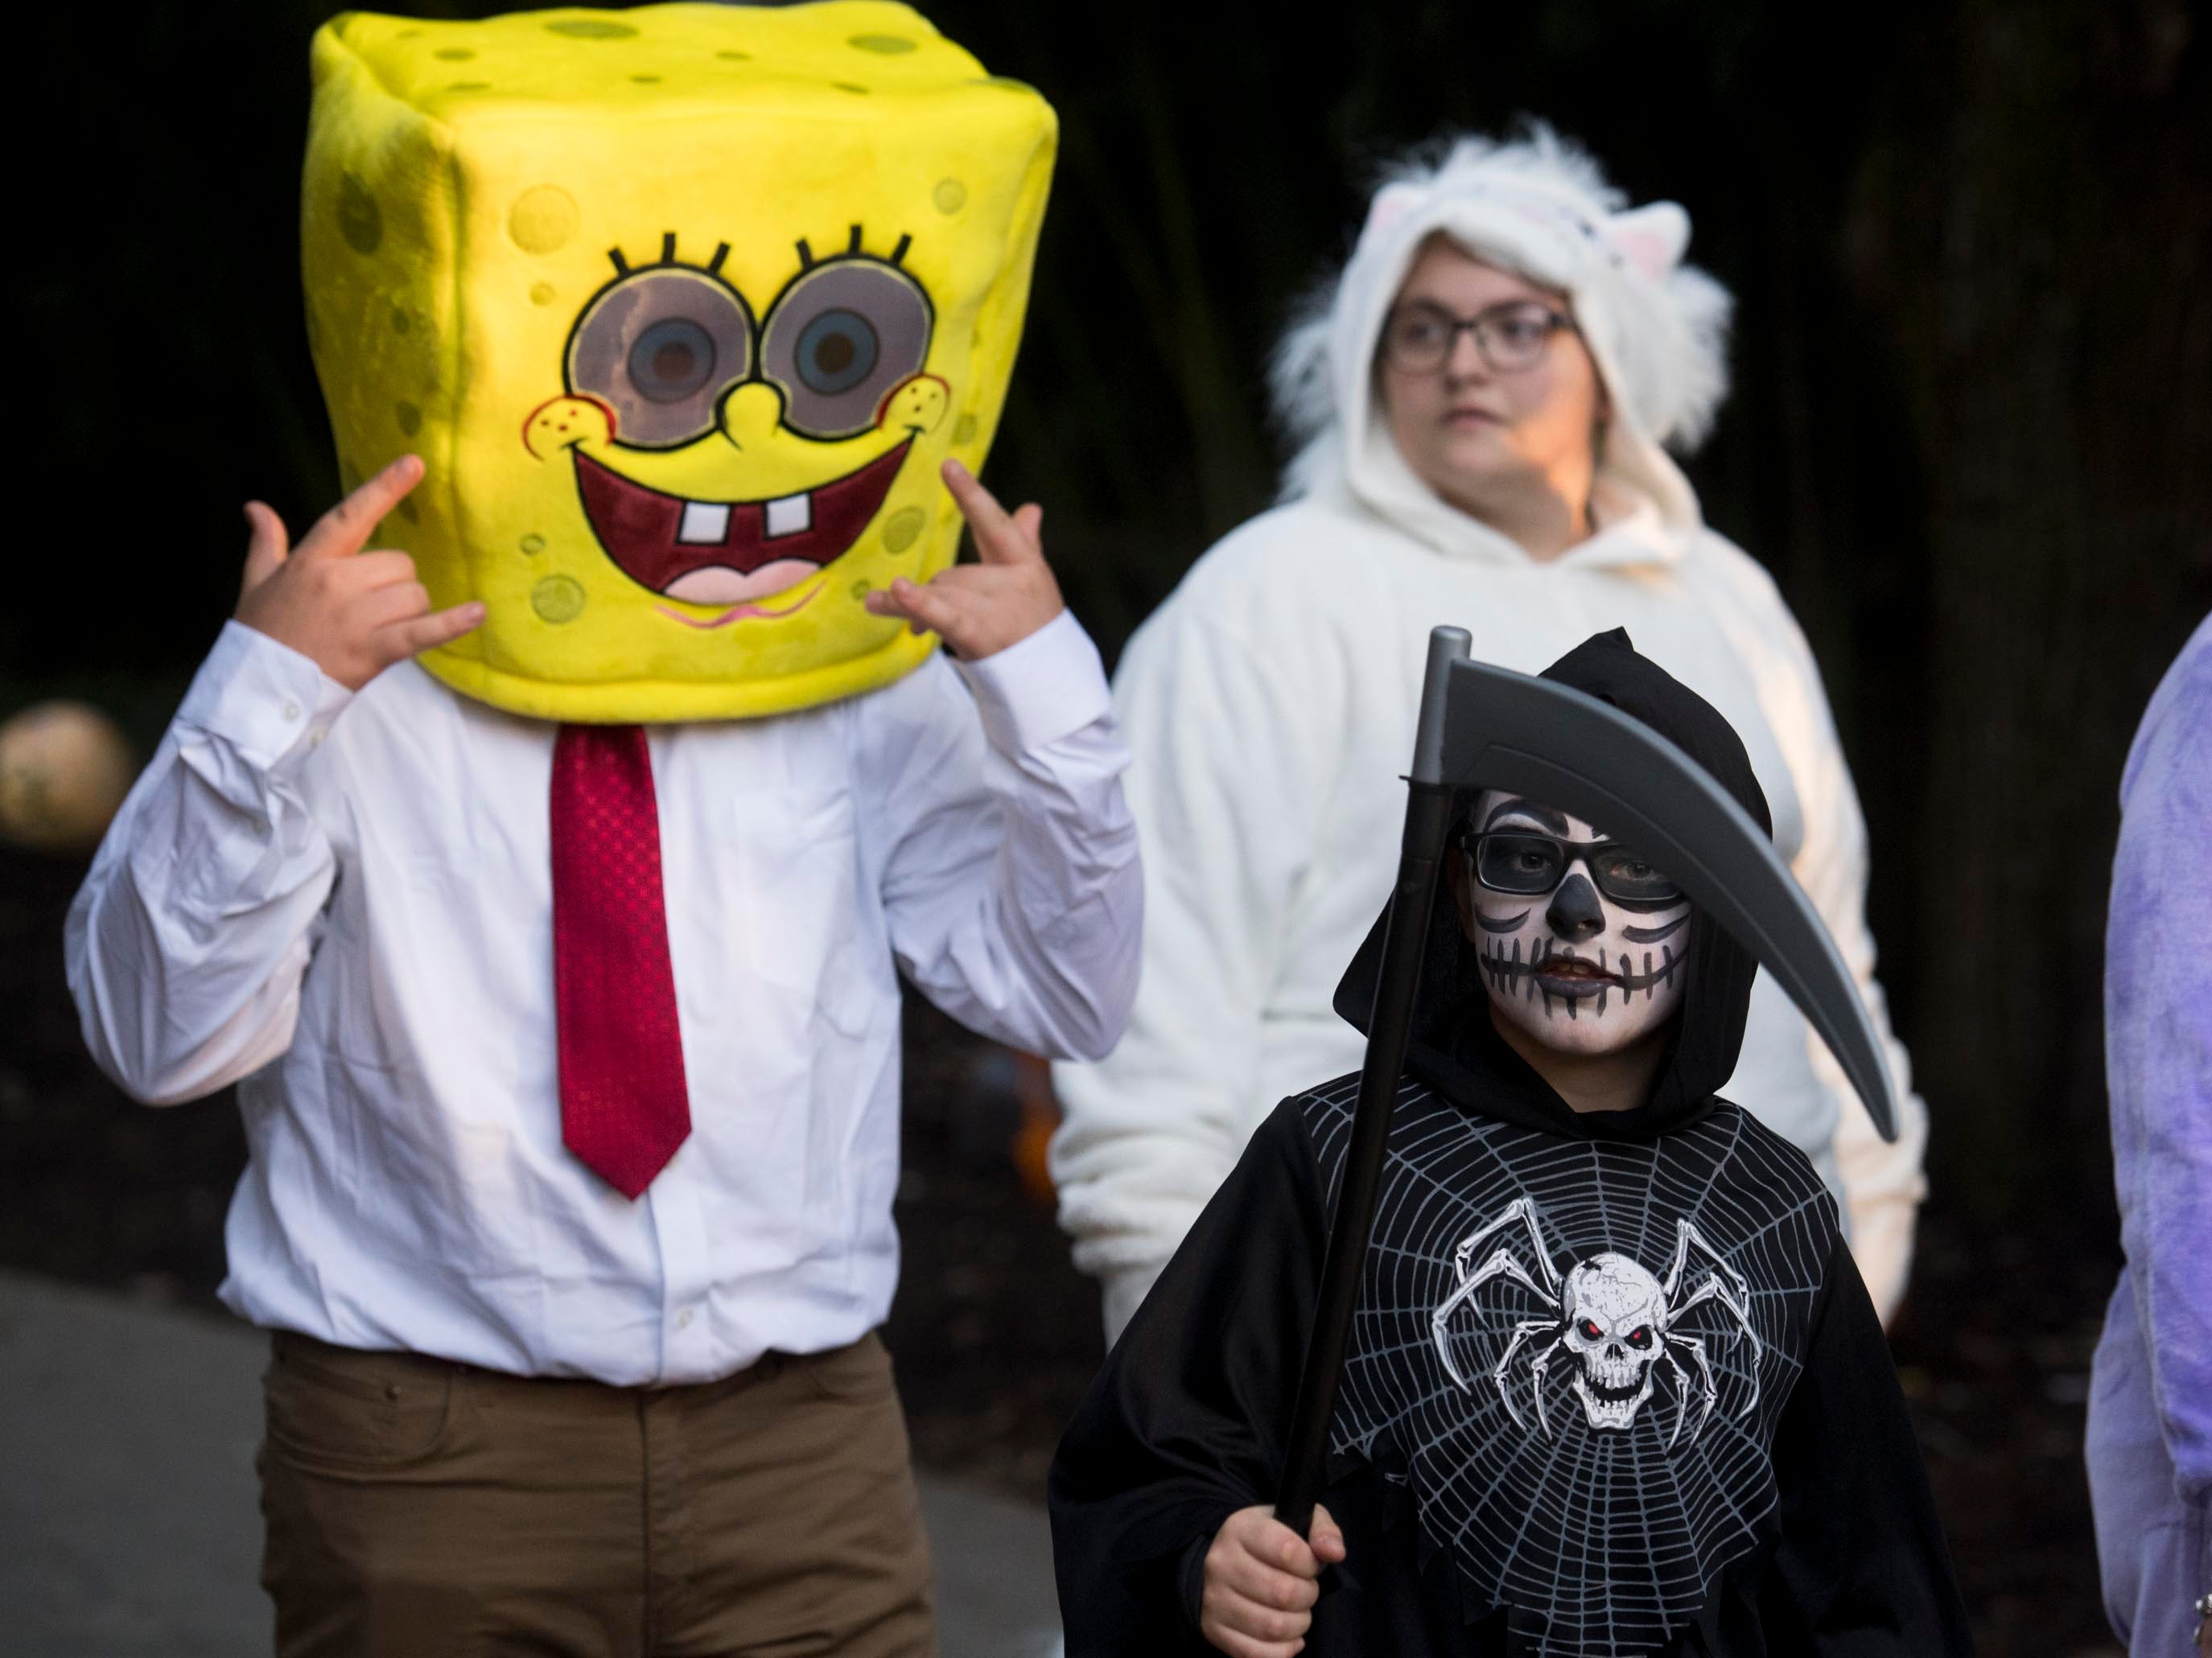 Spongebob Squarepants with the Grim Reaper at Zoo Knoxville's Boo! at the Zoo on Saturday, October 20, 2018.